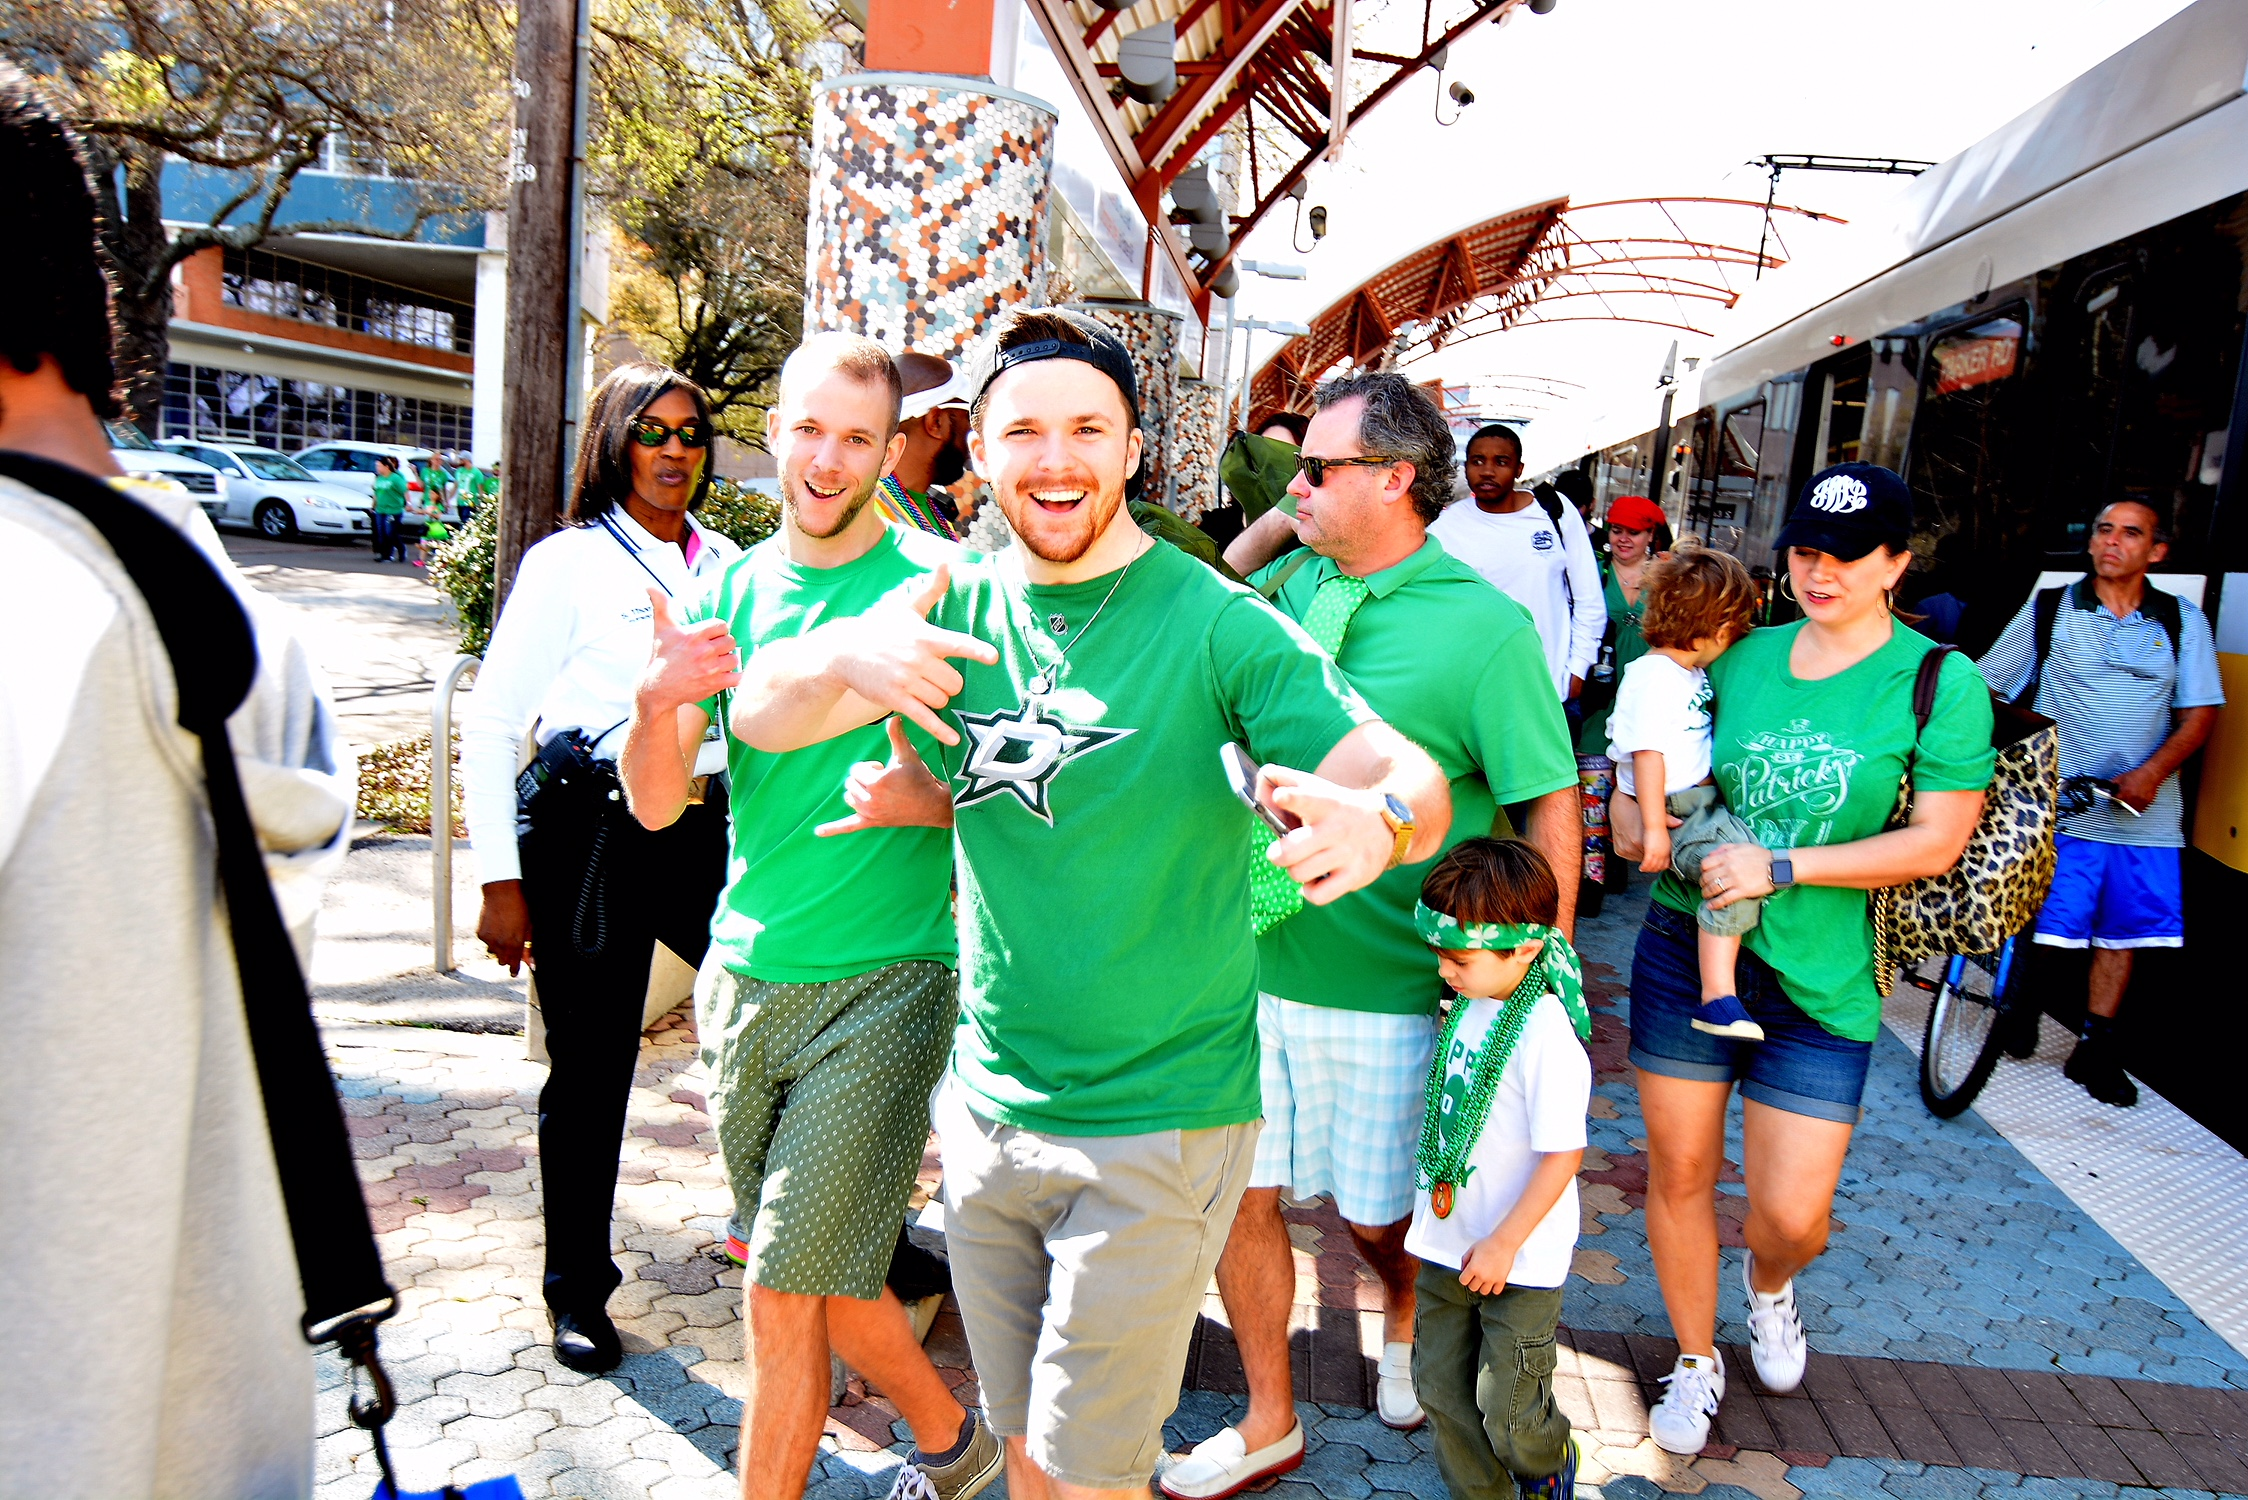 7b92d7ace Six Tips About Riding DART to the Dallas St. Patrick's Parade & Festival